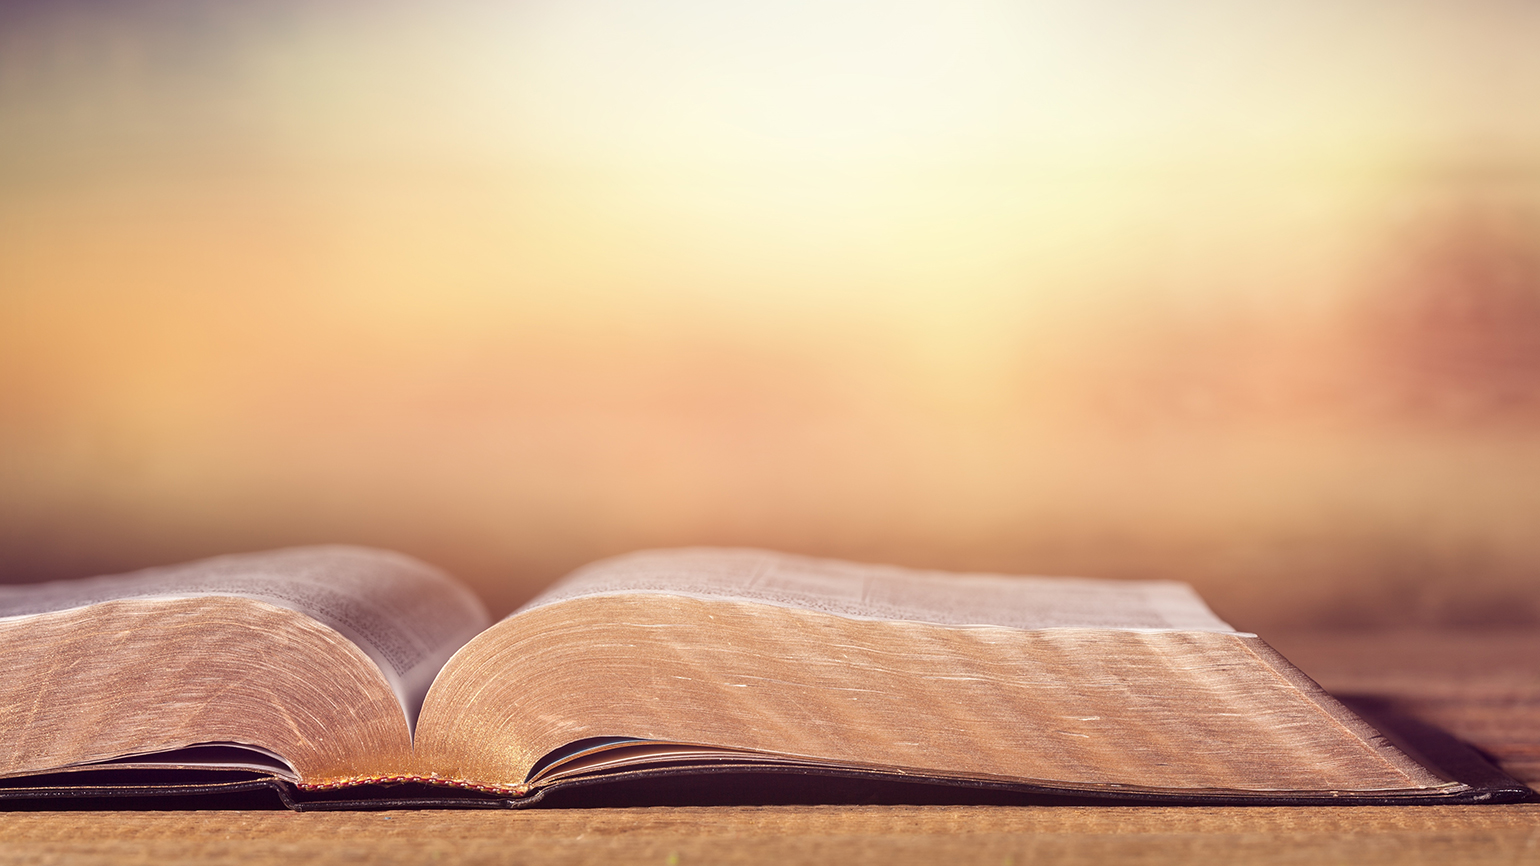 Open Bible on wooden table at sunrise